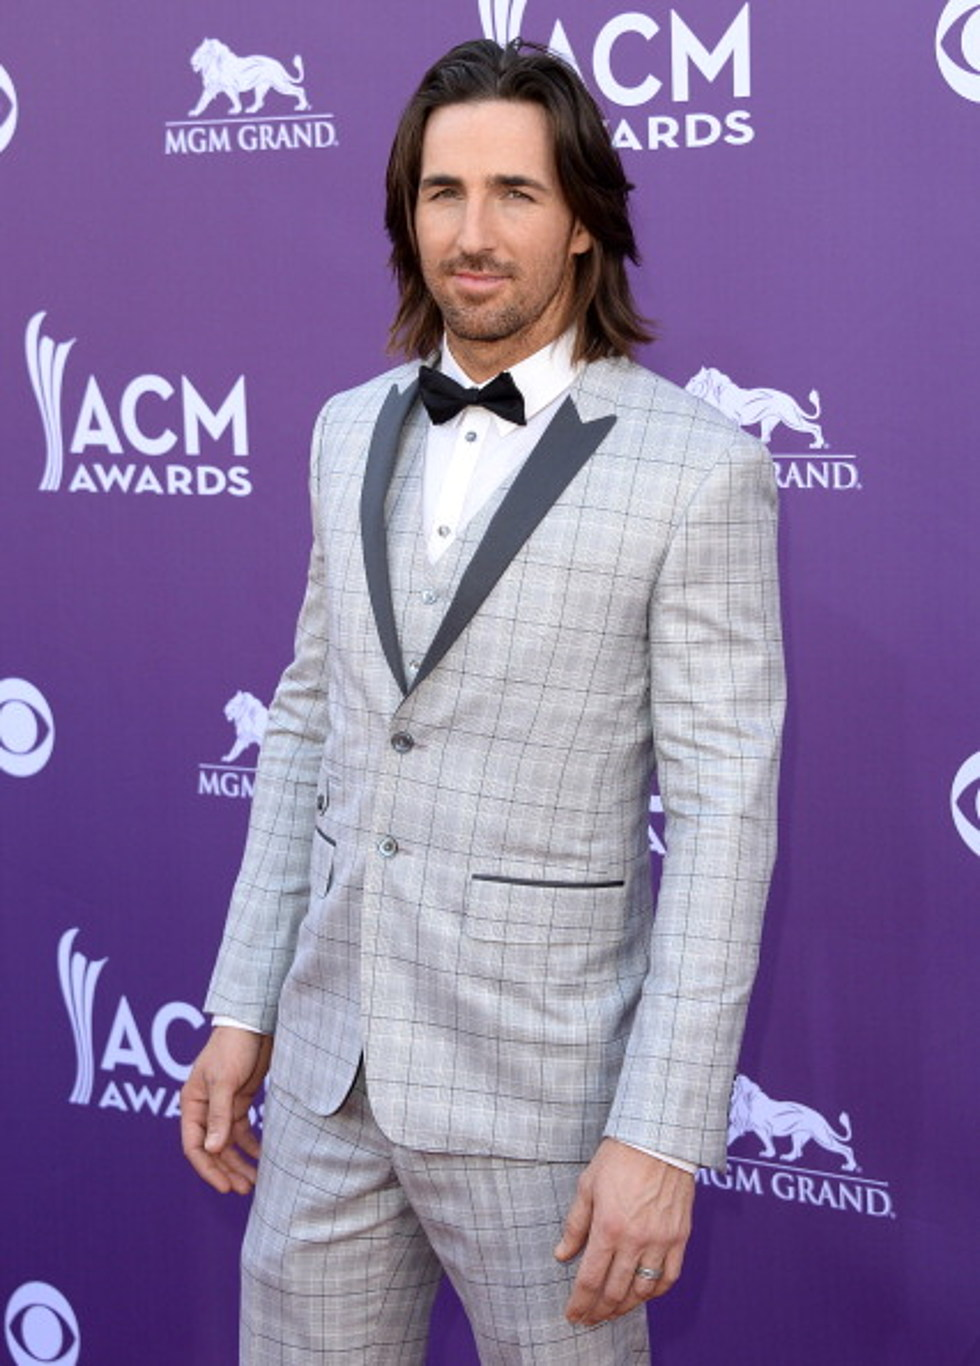 Jake Owen List Of Songs Awesome jake owen splits his pants in concert (video)